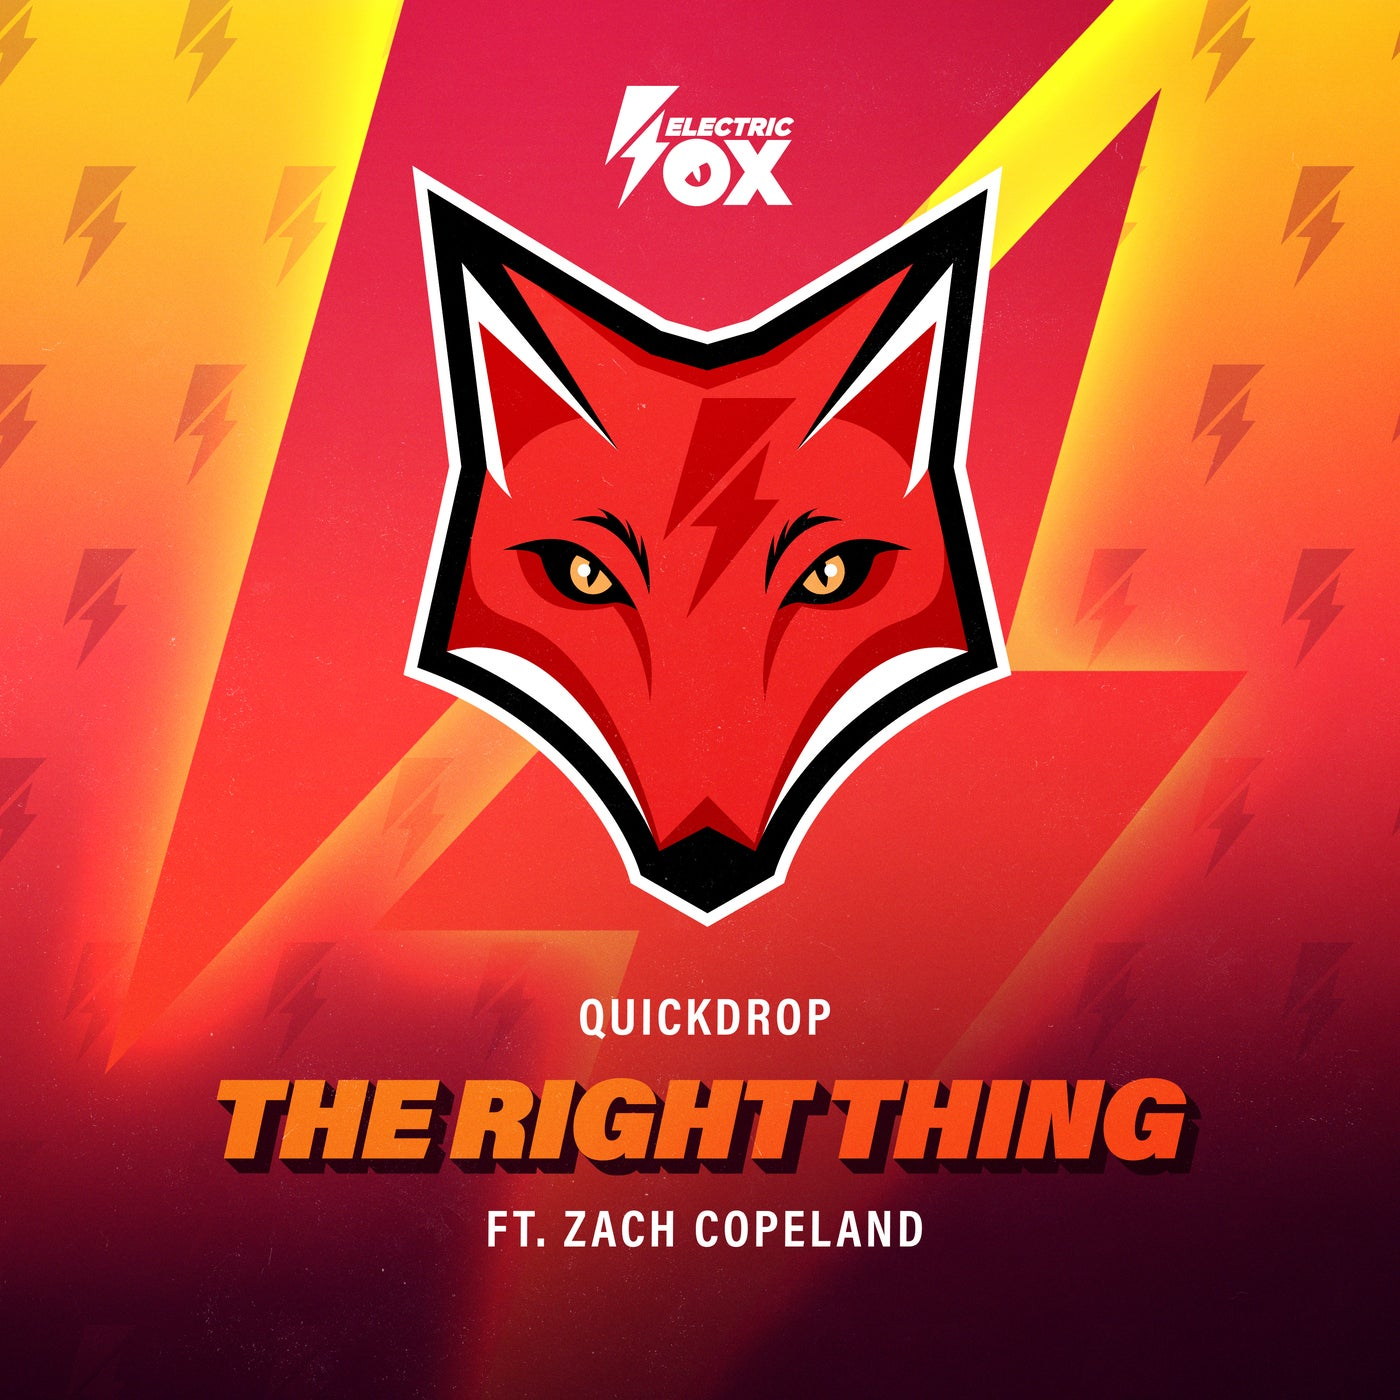 The Right Thing feat. Zach Copeland (Extended Mix)